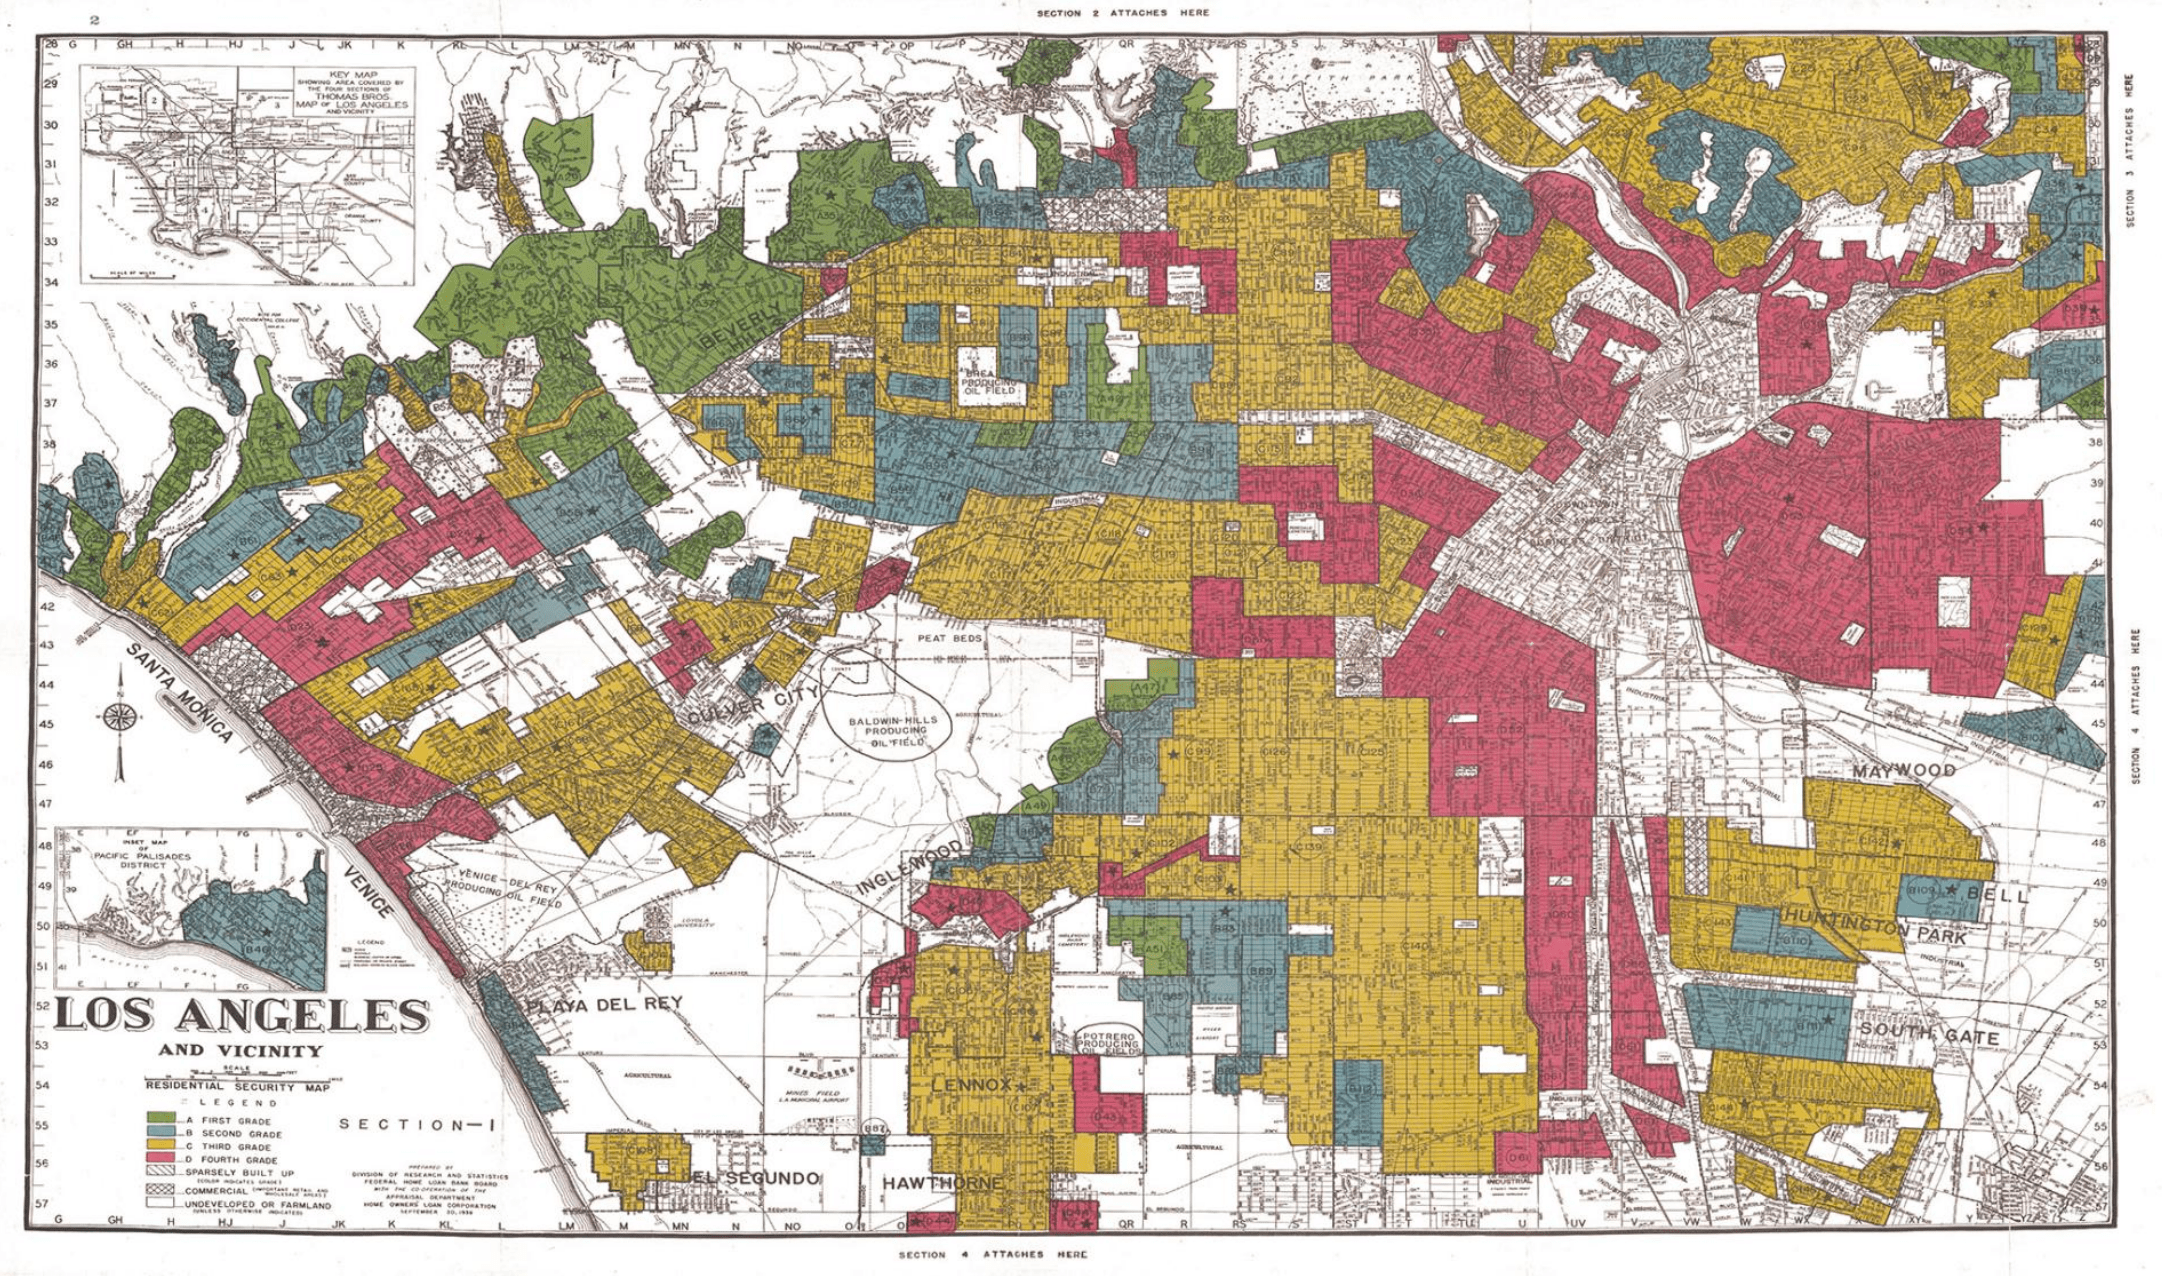 """The term """"redlining"""" has its roots in 1939 maps from the Home Owners' Loan Corporation that designated red zones as """"hazardous"""" investment areas for lenders due to their ethnic composition and poor housing stock (also a product of segregation). Yellow zones were largely populated by whites but were being """"infiltered"""" by non-whites and thus categorized as """"definitely declining."""" On the westside of South Central, Slauson marked a dividing line between more desirable neighborhoods (in blue) and less desirable yellow ones (see how these zones shaped population growth below). Visit Mapping Inequality to click on individual neighborhoods with L.A. and see how they were classified and described at the time."""